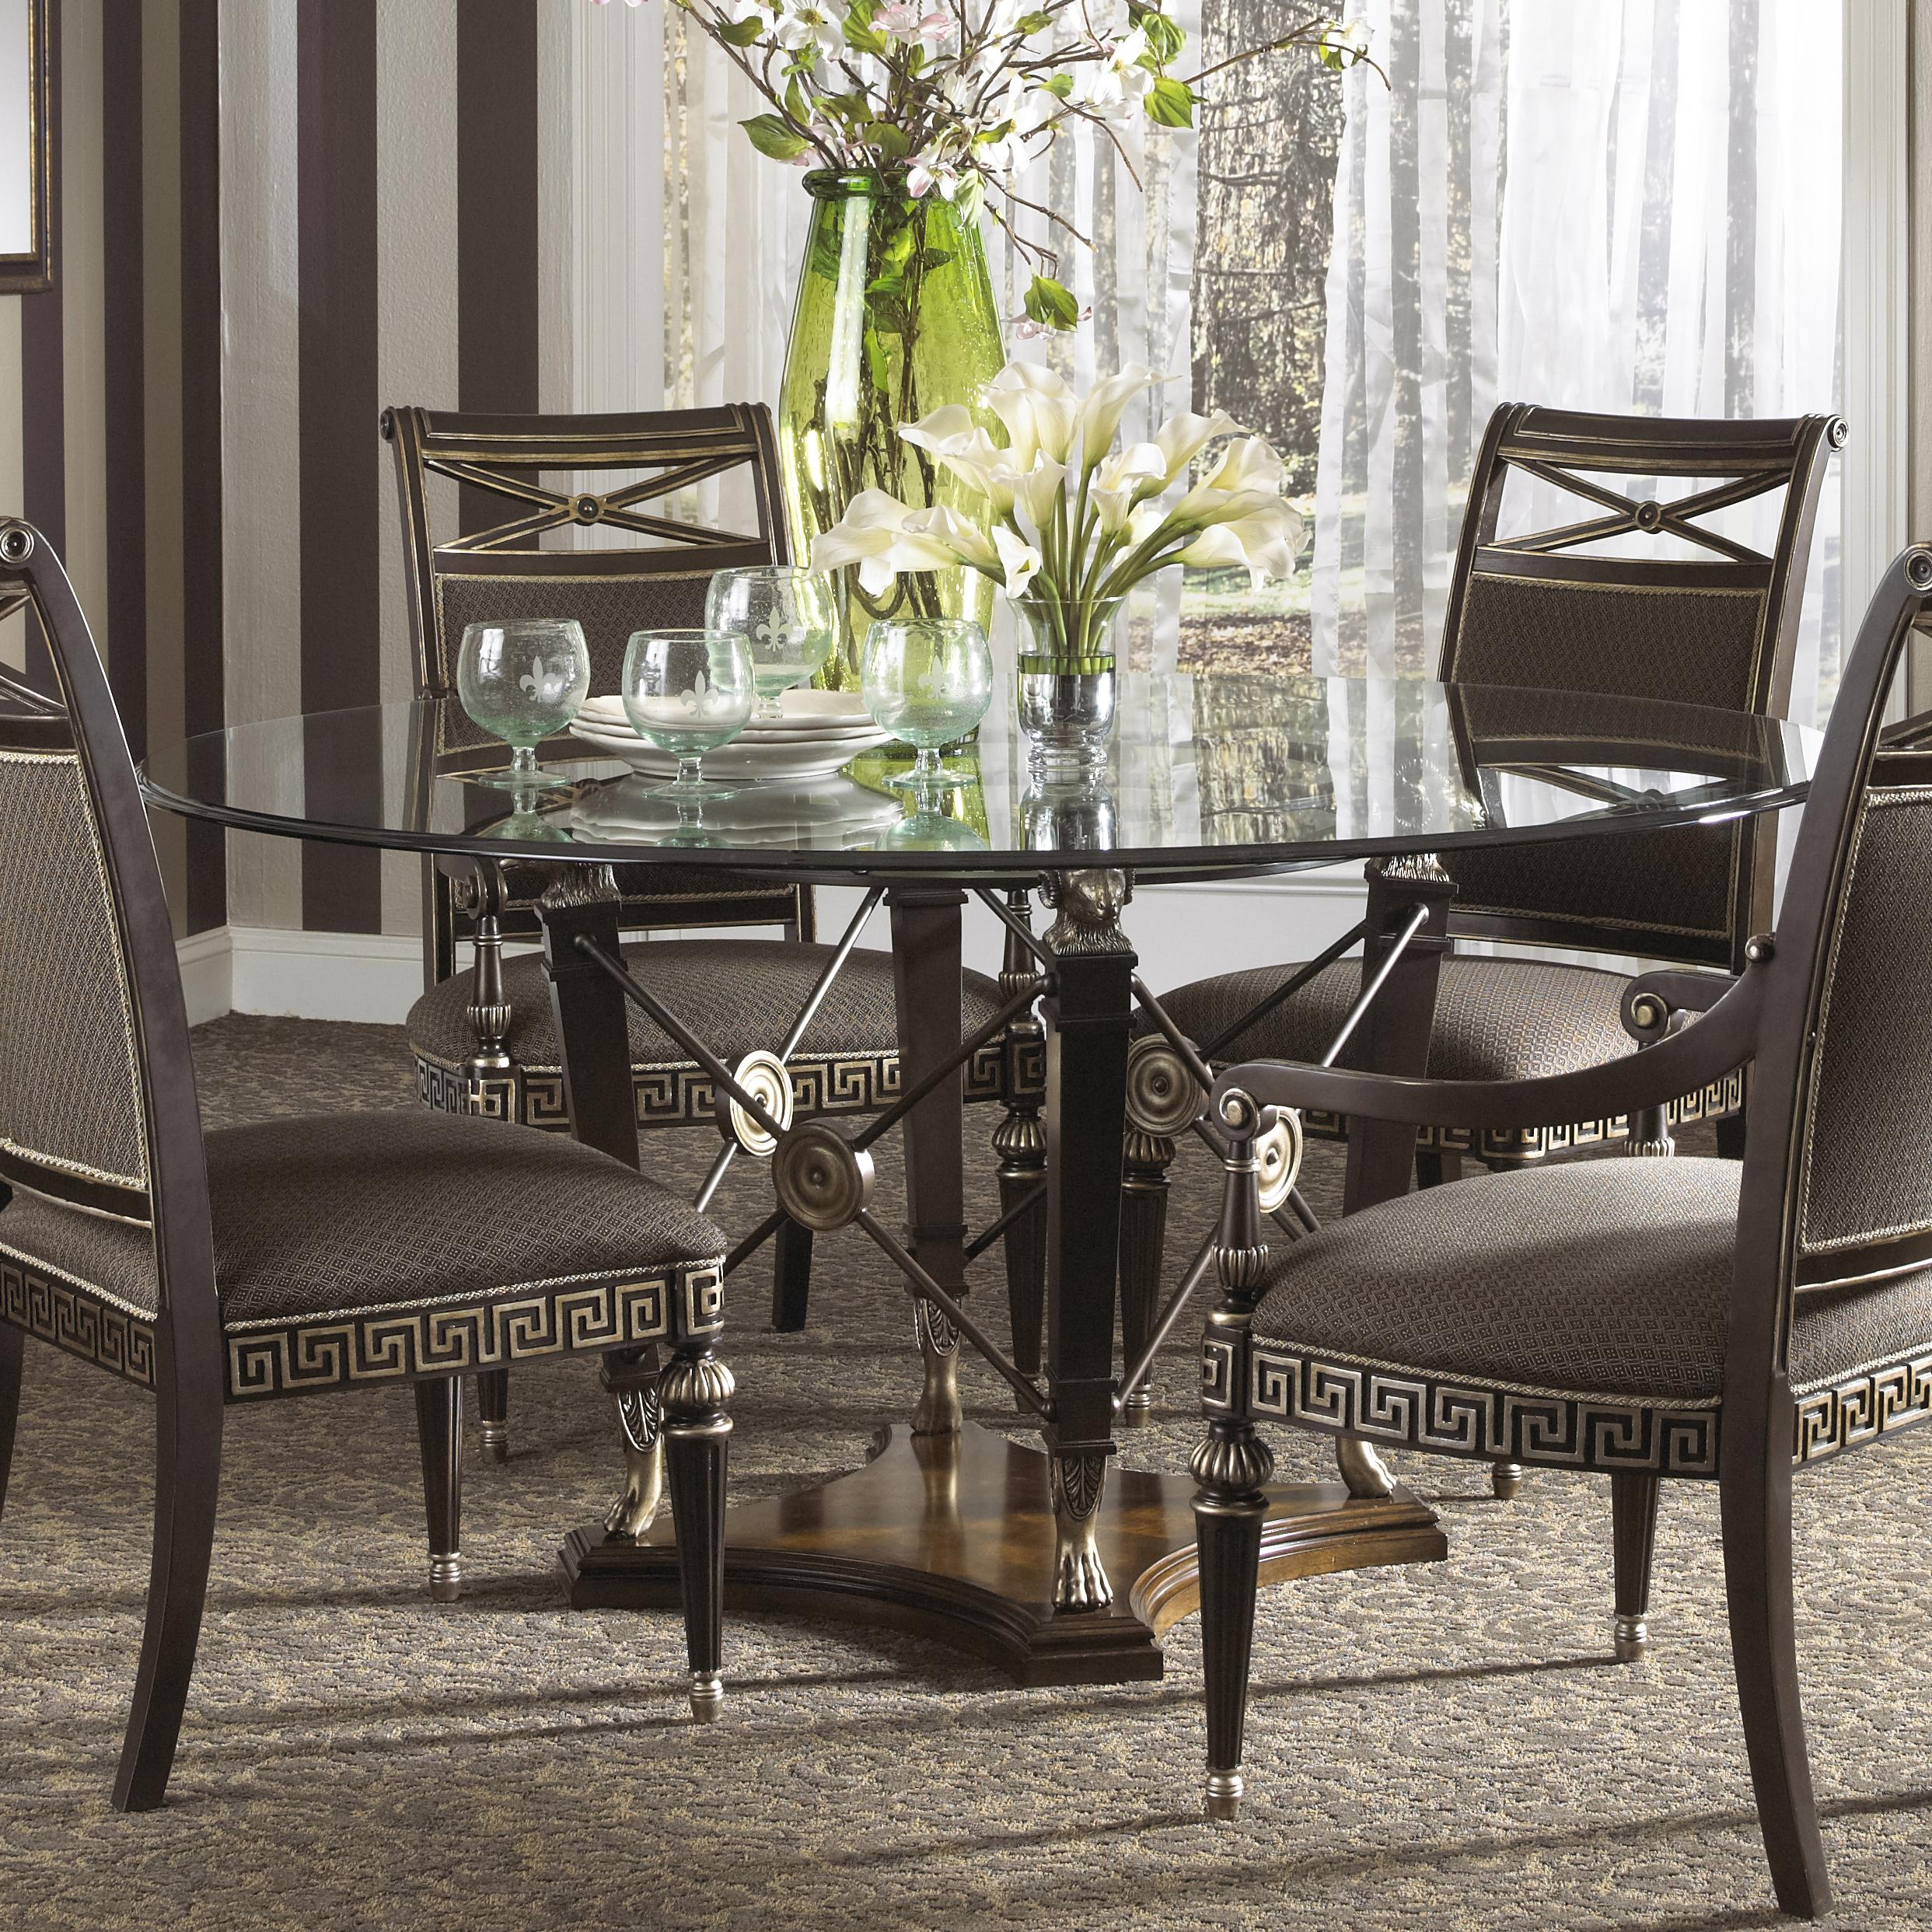 Formal Grecian Style Round Dining Table With Glass Top By Fine Furniture Design Wolf And